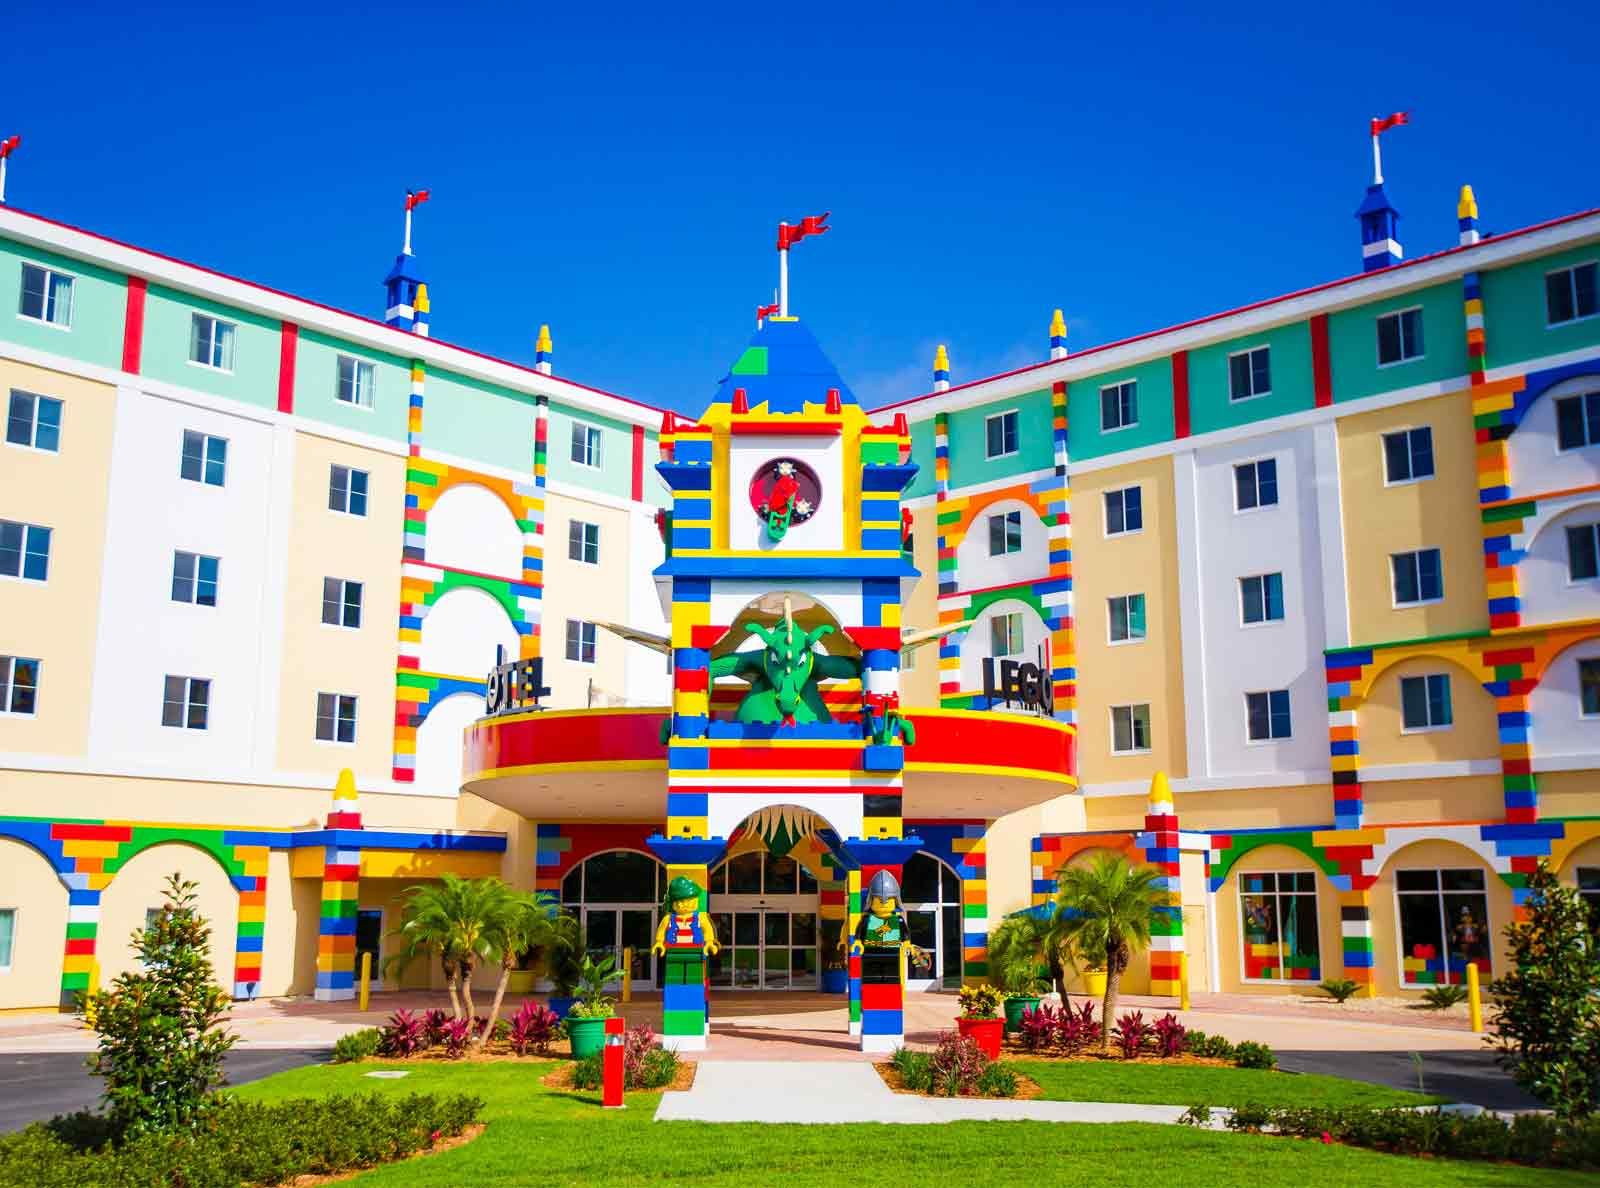 Legoland Hotel Ticket Packages